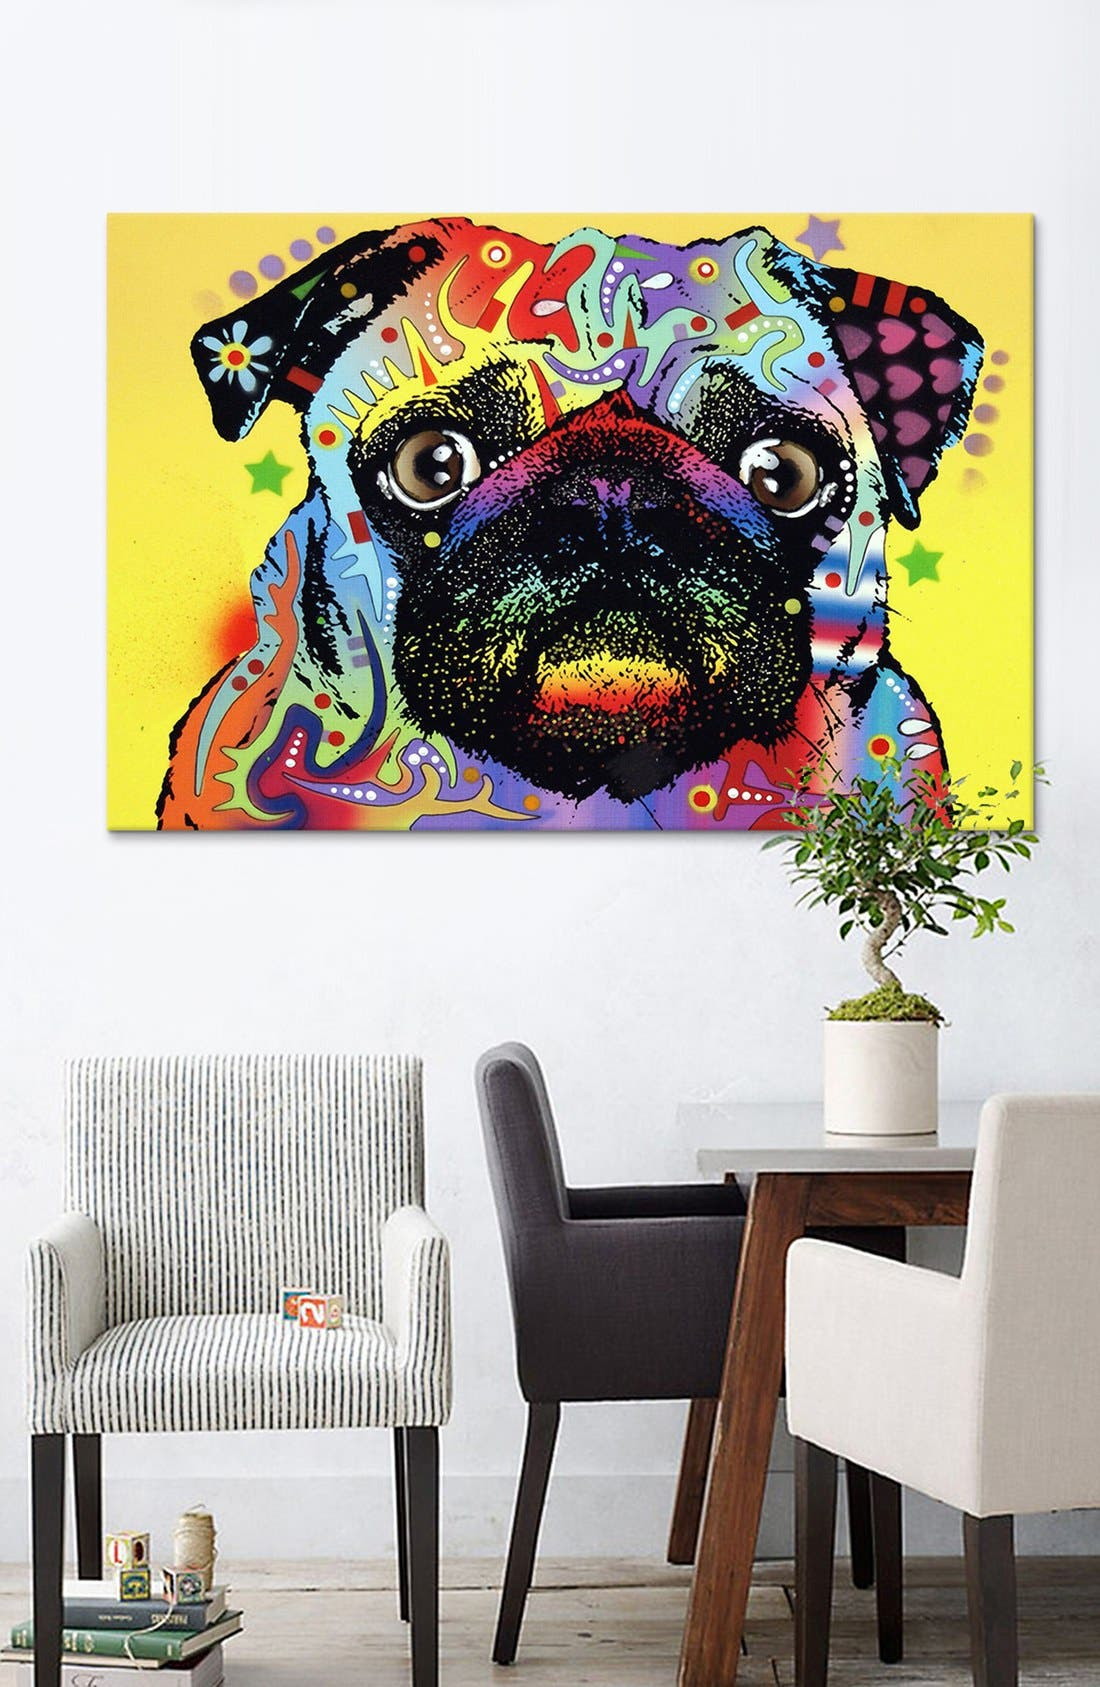 'Pug - Dean Russo' Giclée Print Canvas Art,                             Alternate thumbnail 2, color,                             Yellow